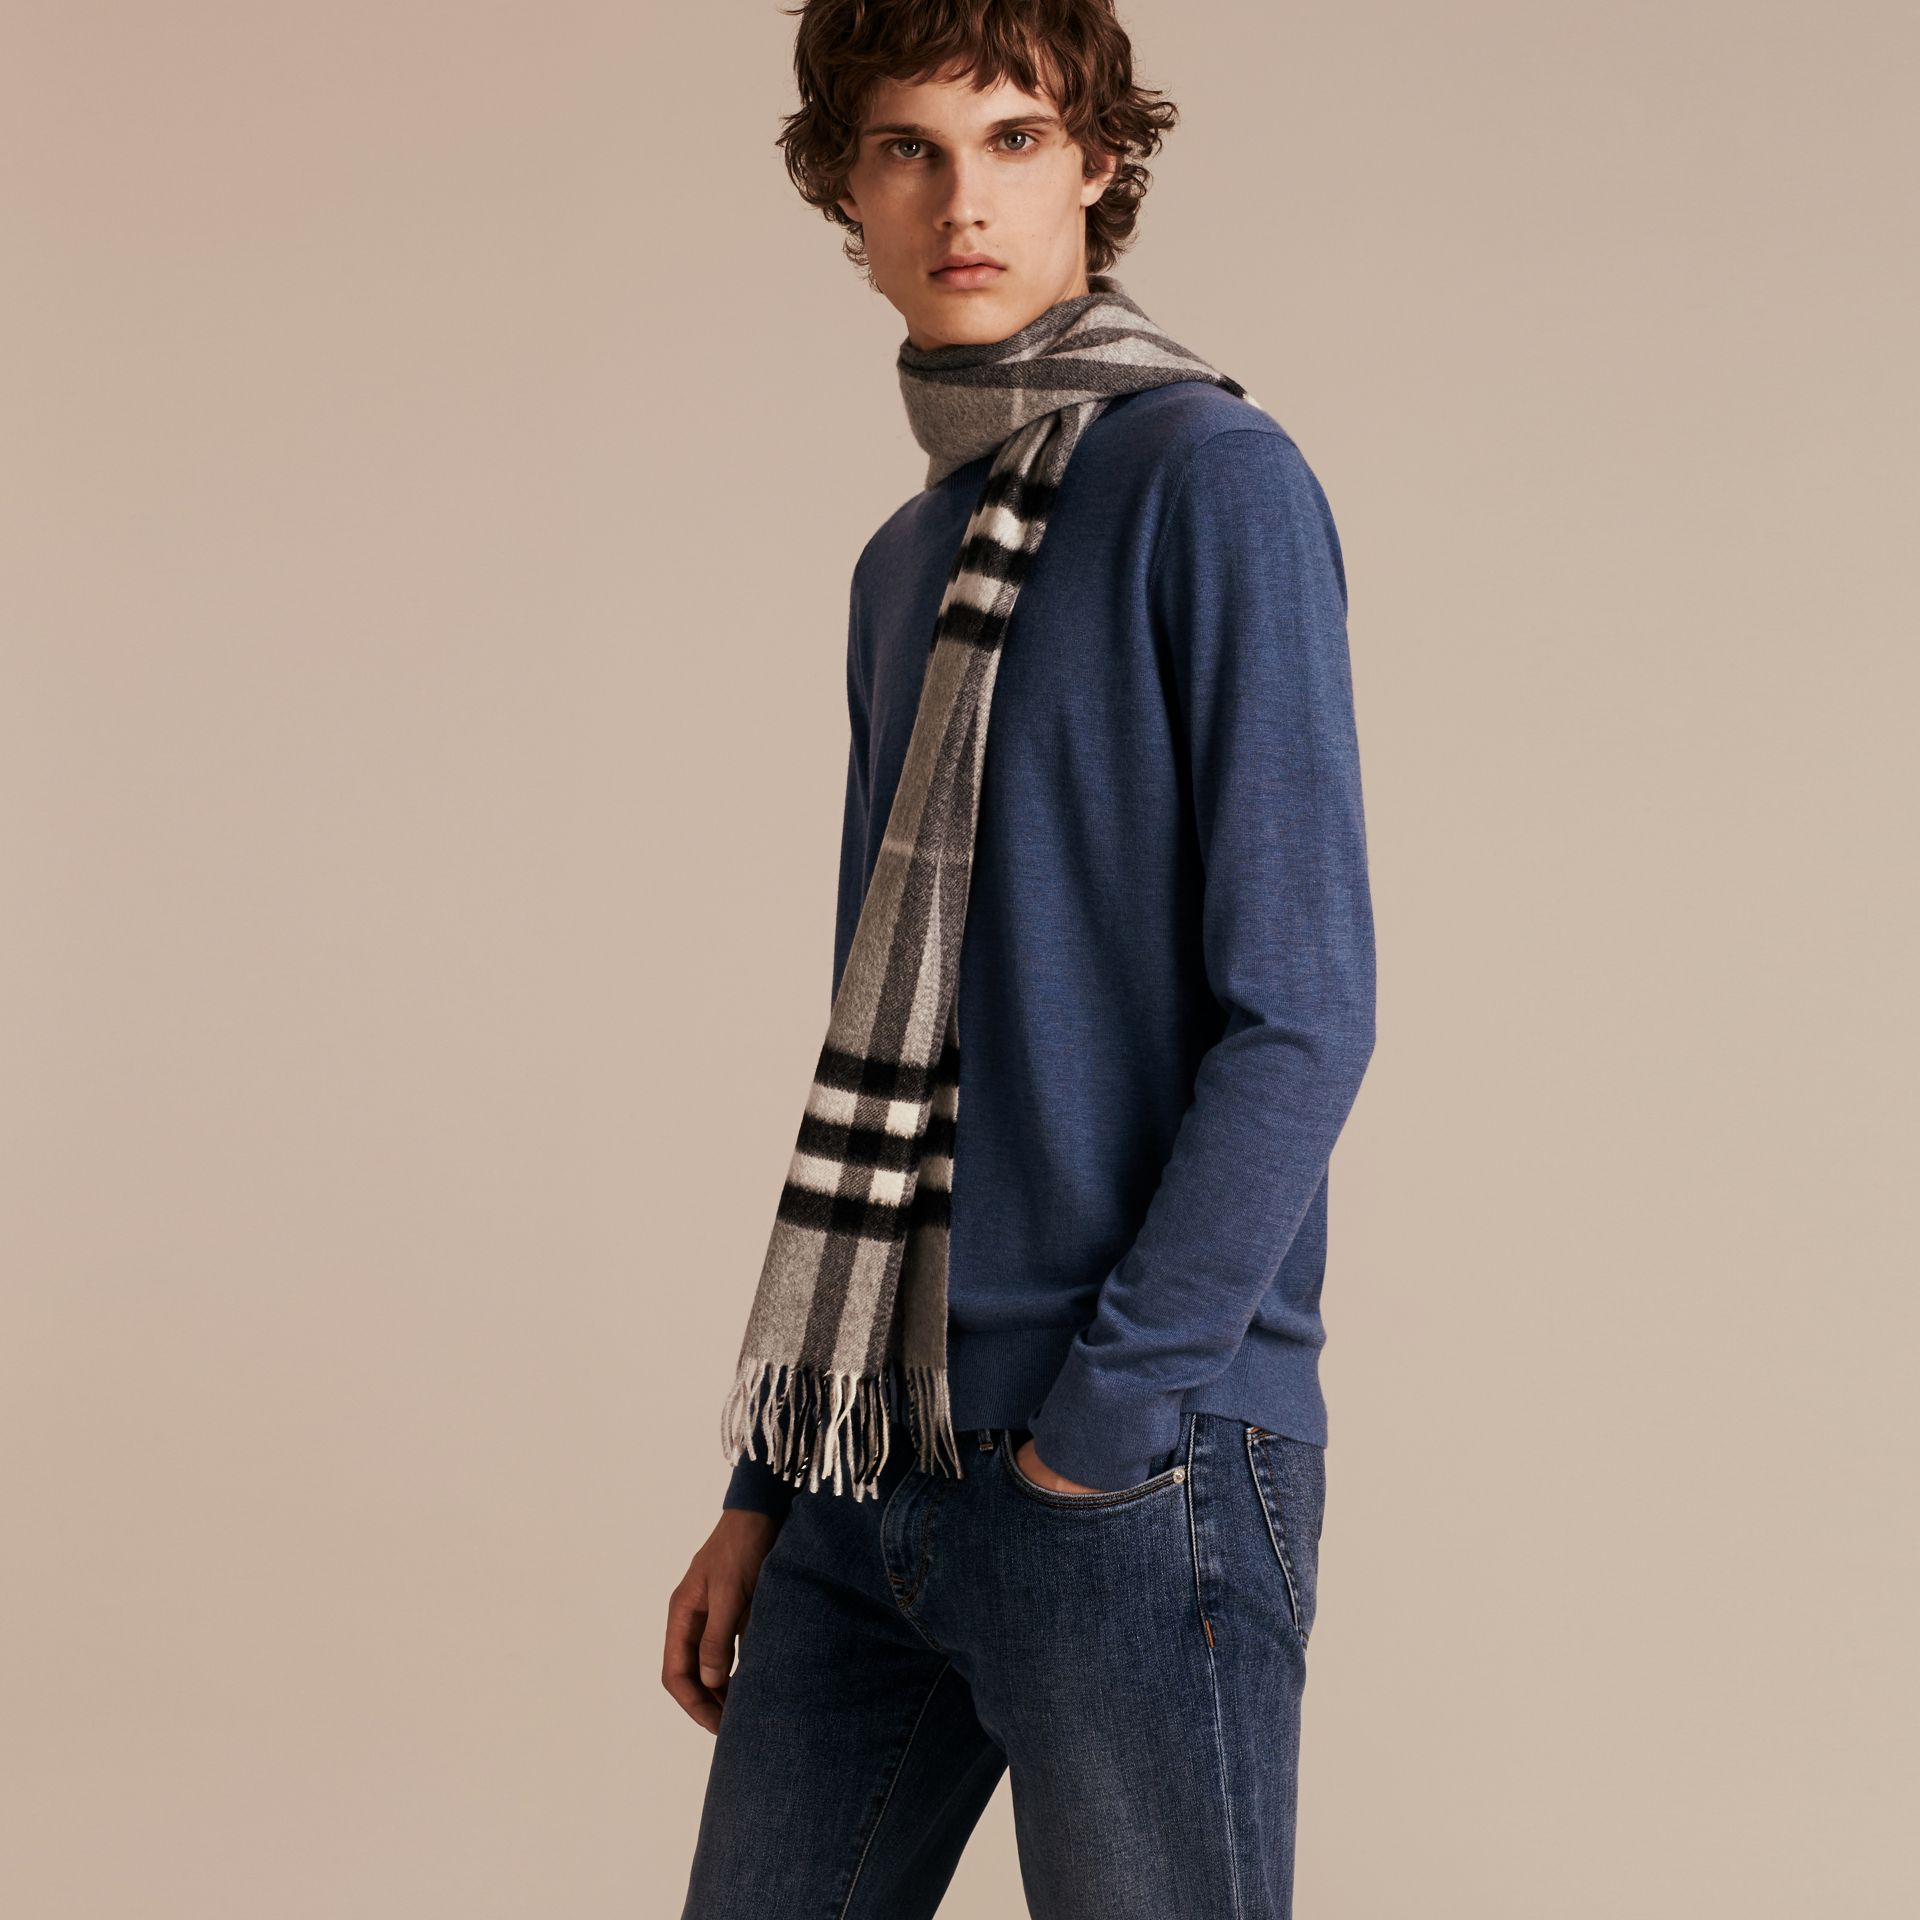 Check Jacquard Detail Cashmere Sweater in Dusty Blue - Men | Burberry United States - gallery image 5